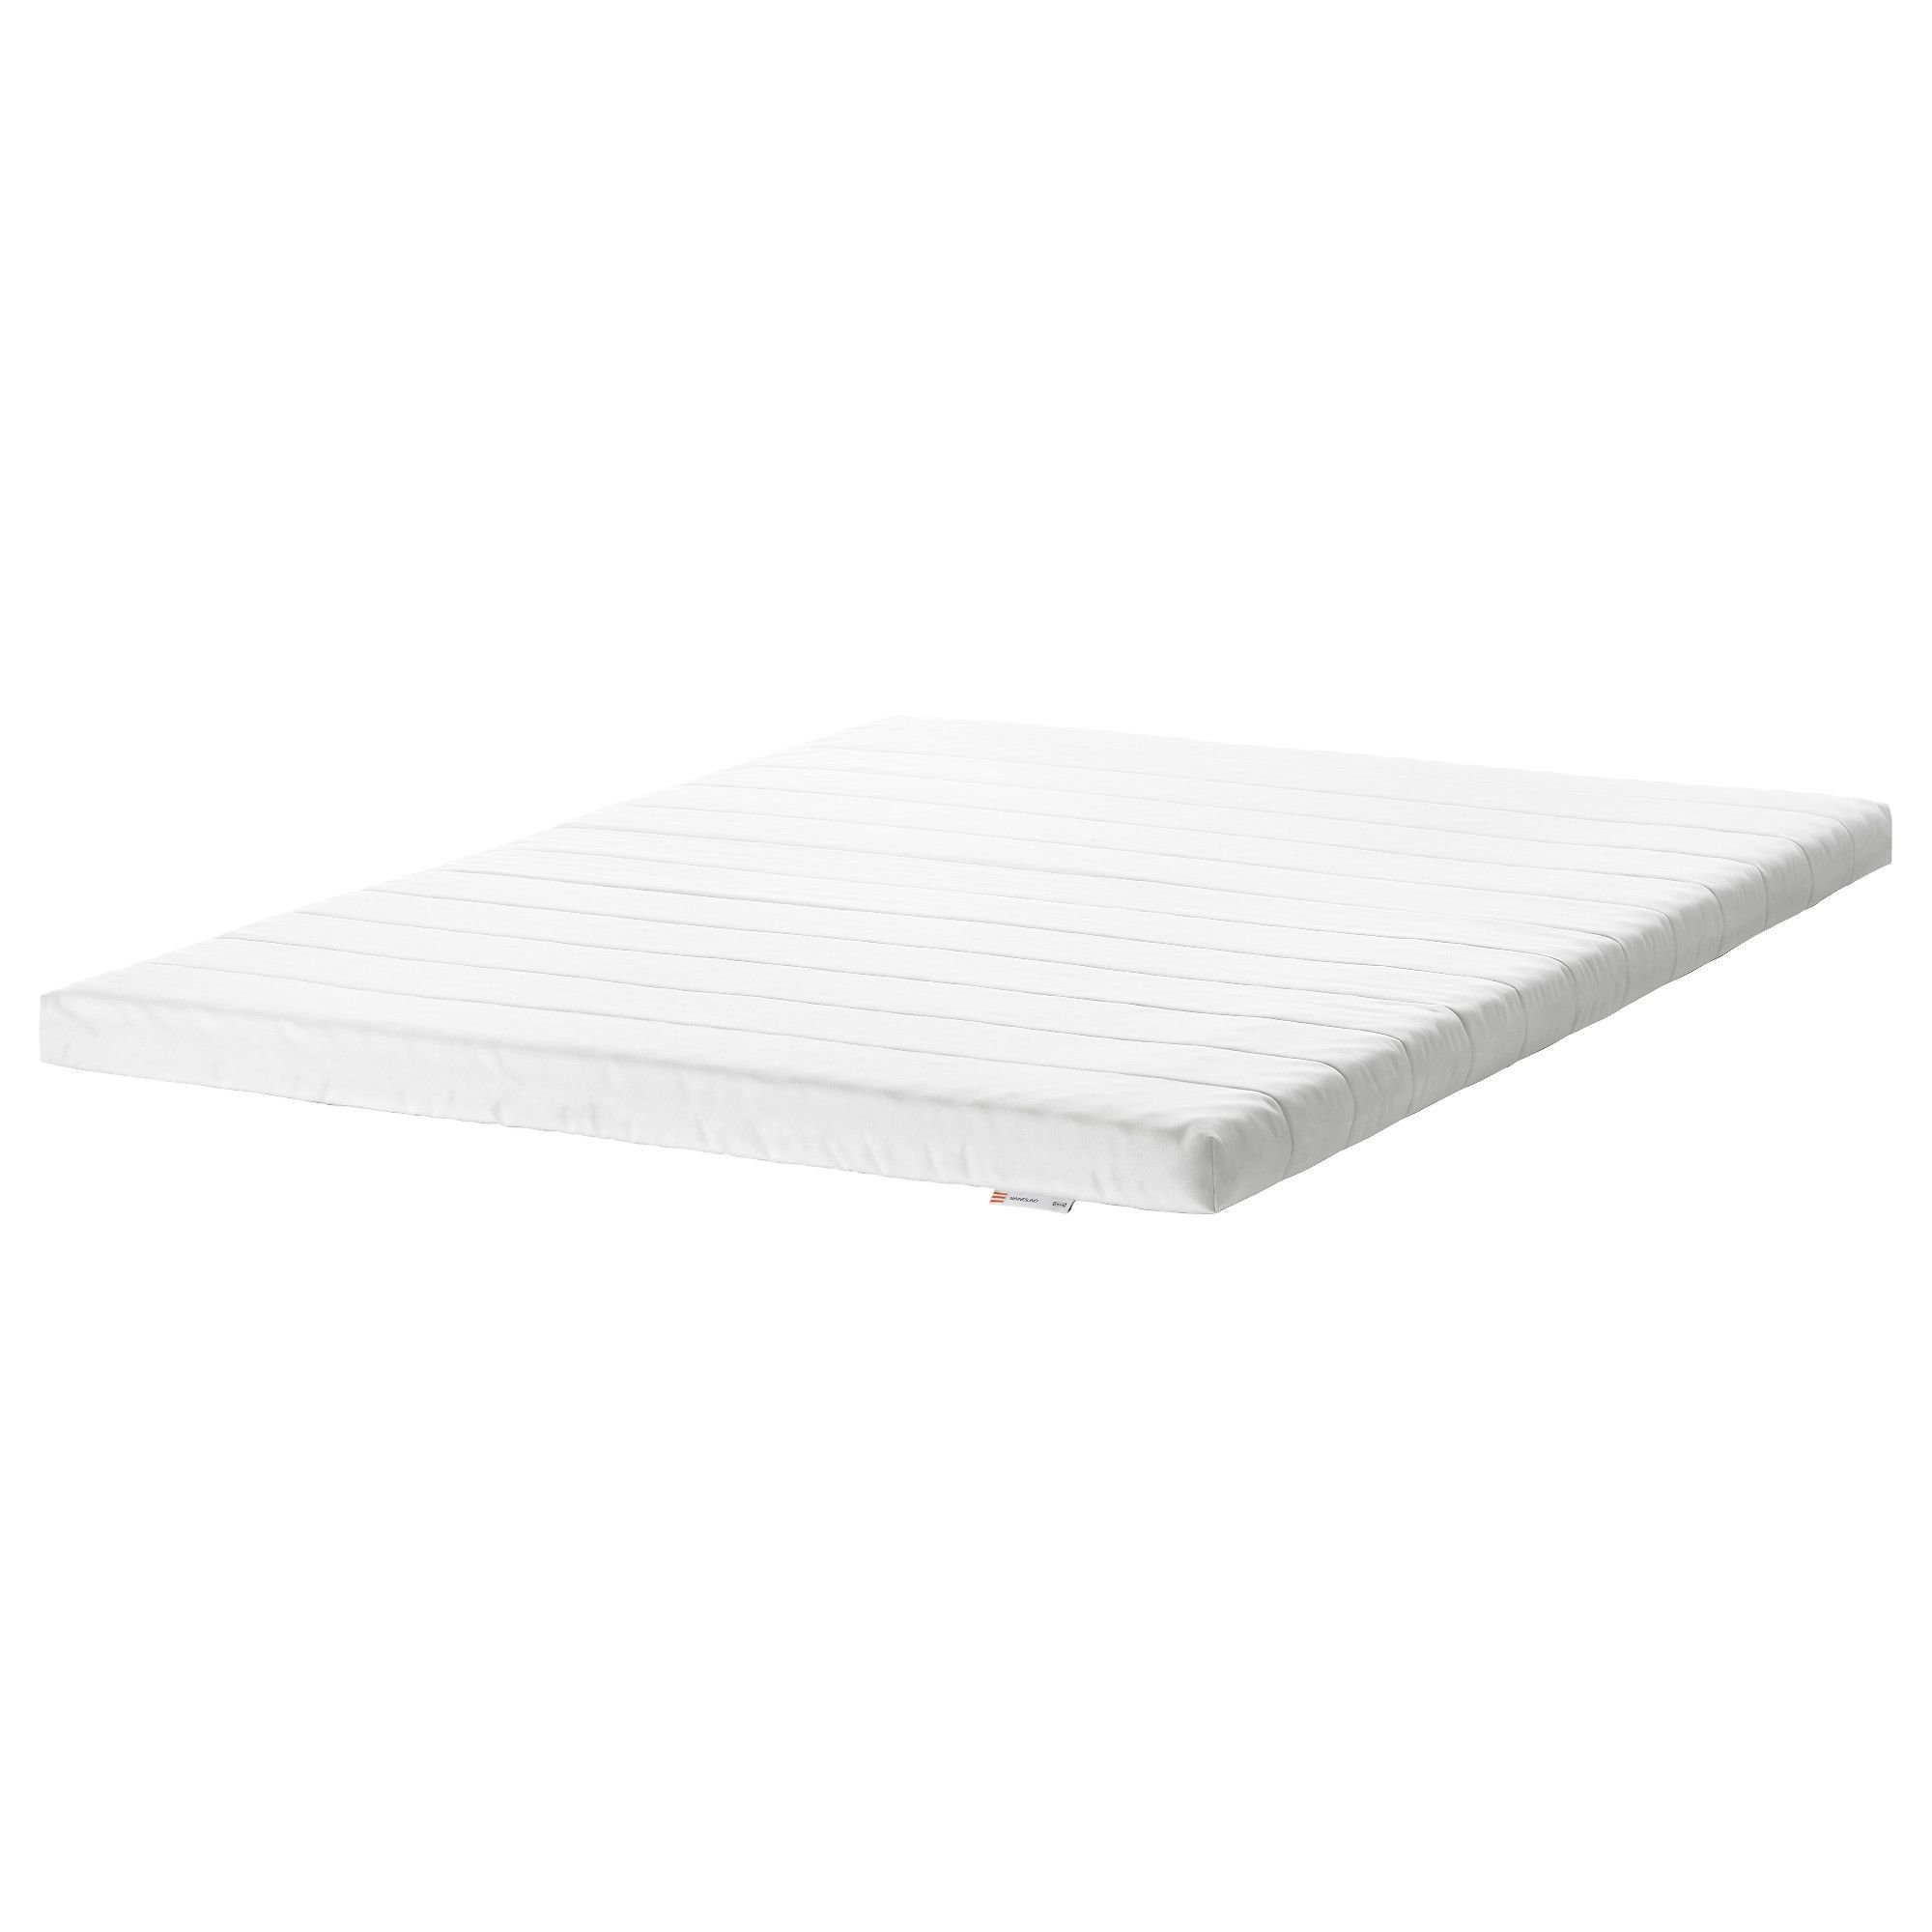 ikea metal headboards full black shopping vanity deals for inexpensive twin buy bedroom firm drawers bed platform beds and box size sale malm cheap frames queen best king headboard leather white with frame modern image rails mattress double of is the single